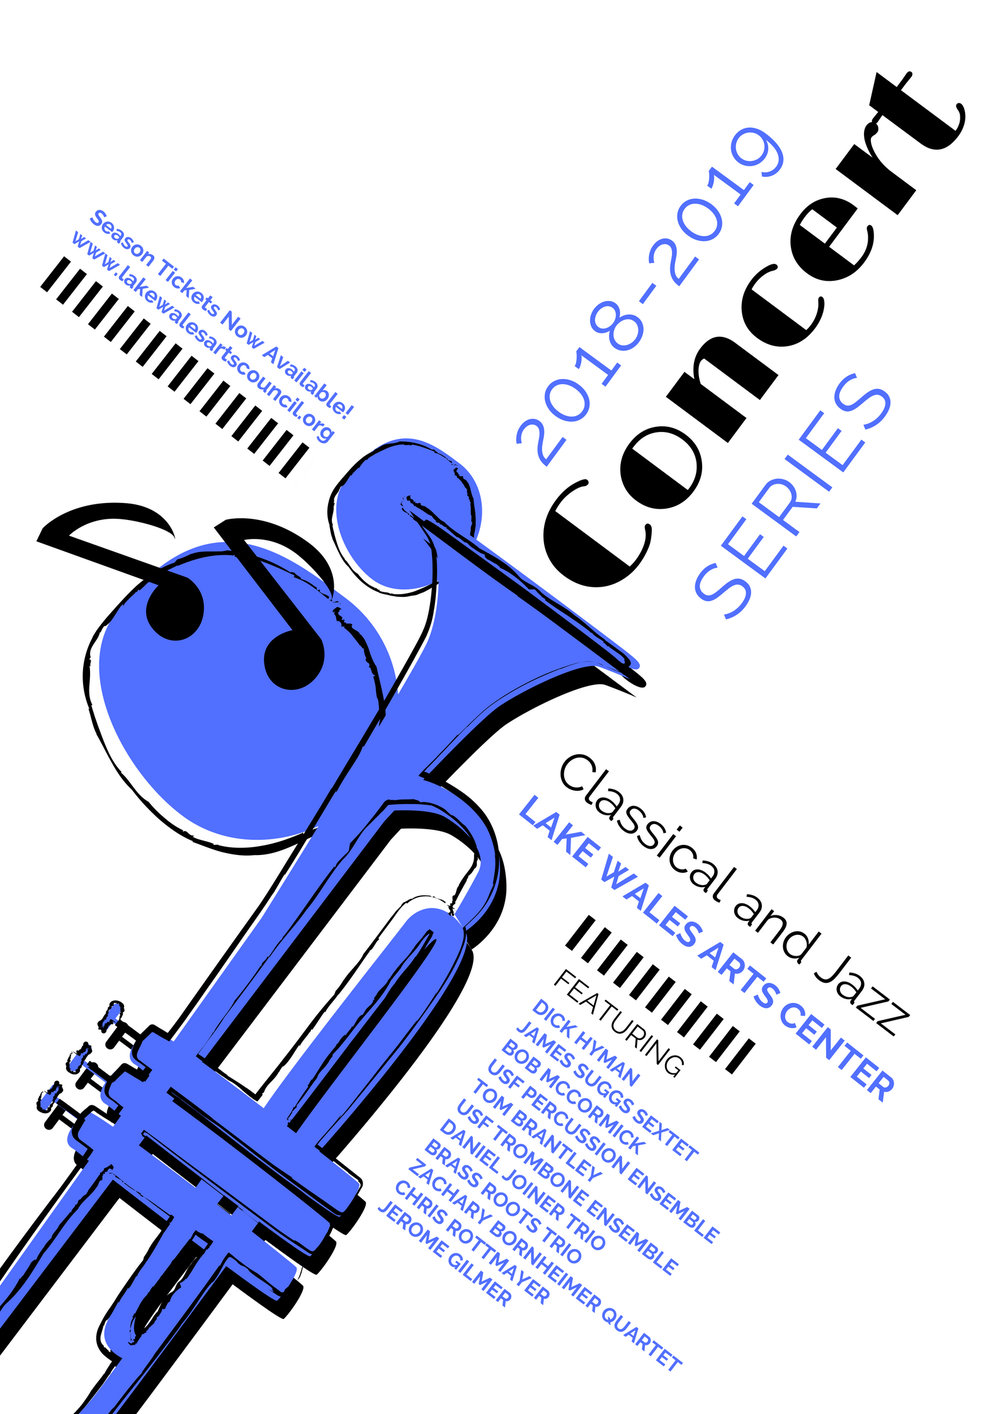 2018_concertseriesflyer_updated1.jpg